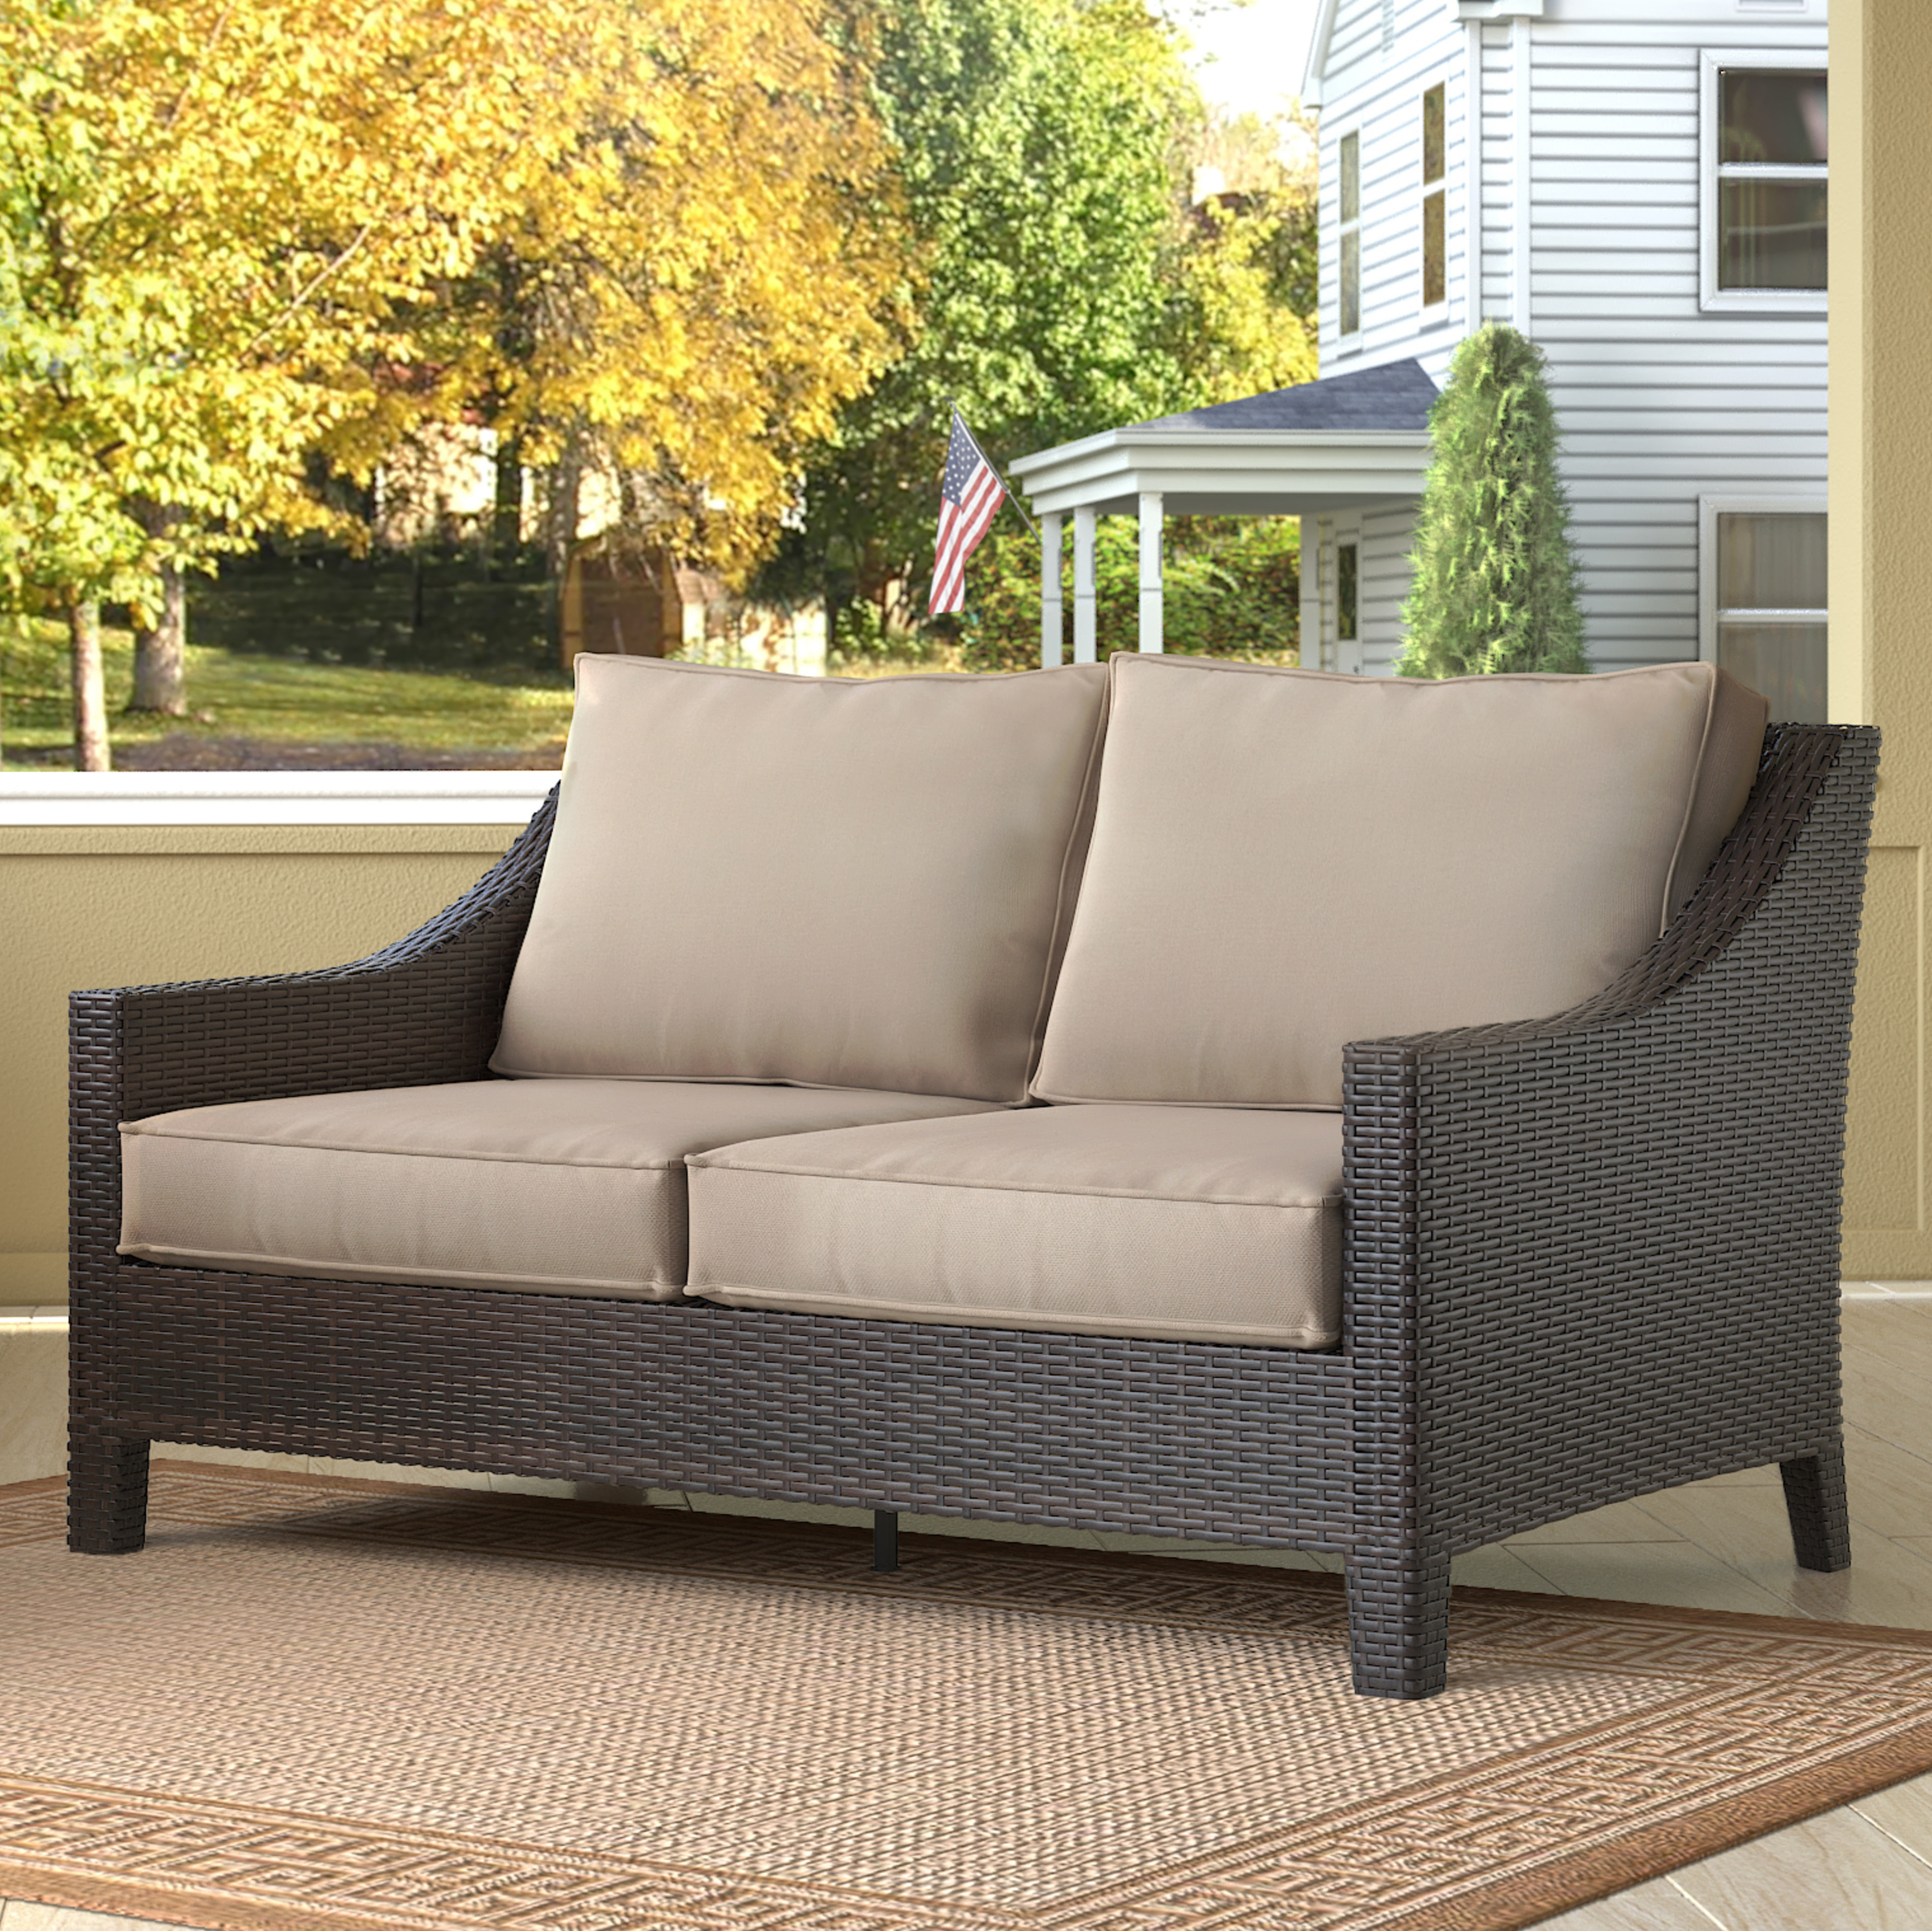 Most Up To Date Tahoe Outdoor Wicker Loveseat With Cushions In Wicker Loveseats (View 4 of 20)